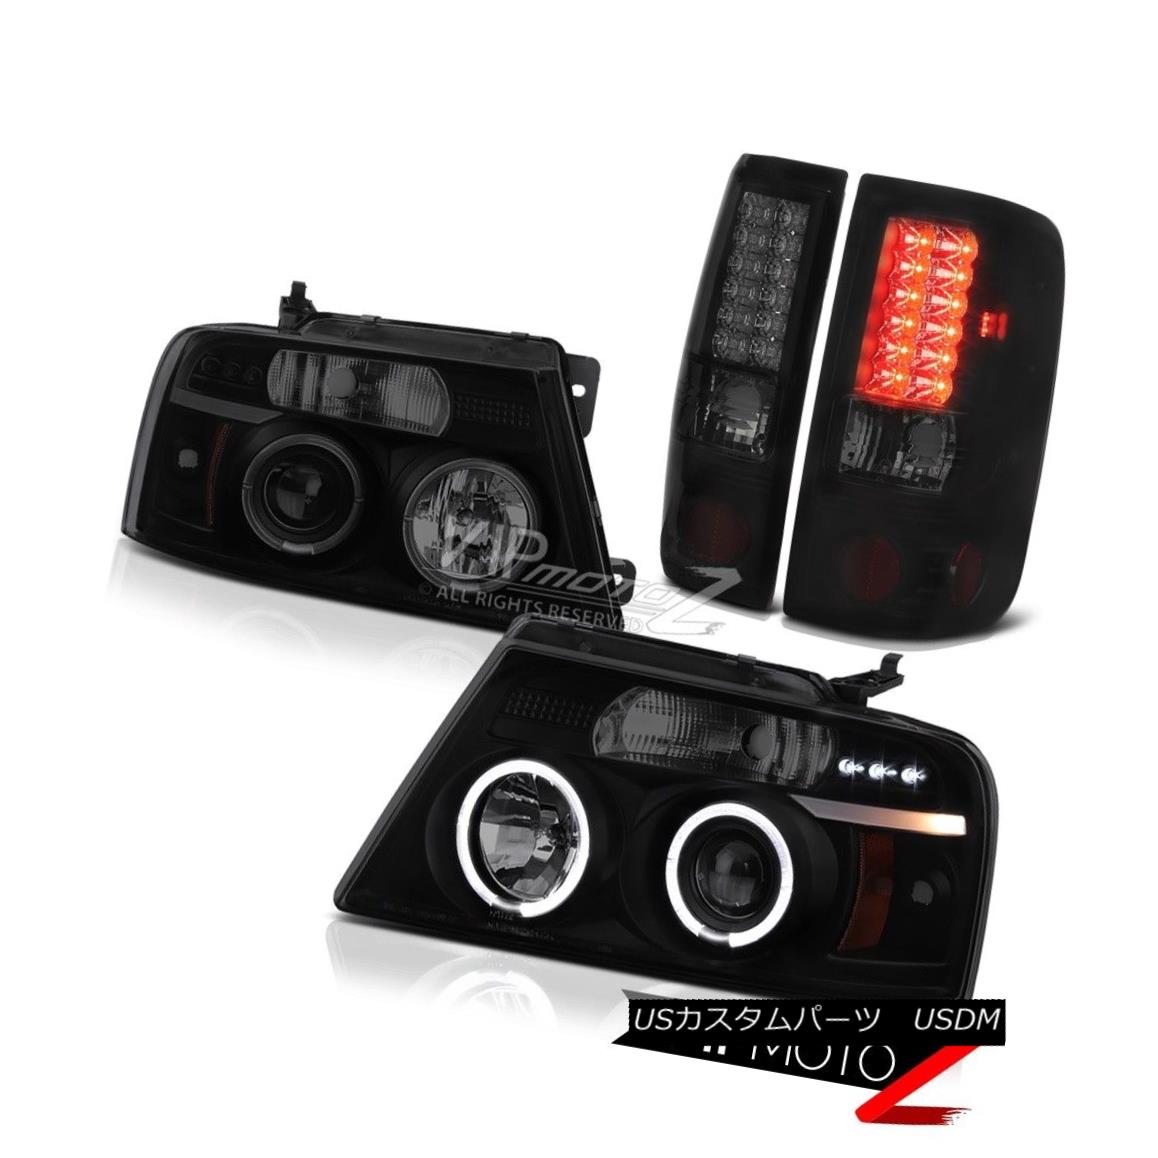 テールライト 2004-08 Ford F150 [Sinister Black] Projector Headlight Halo LED Rear Tail Lights 2004-08 Ford F150 [Sinister Black]プロジェクターヘッドライトHalo LEDリアテールライト